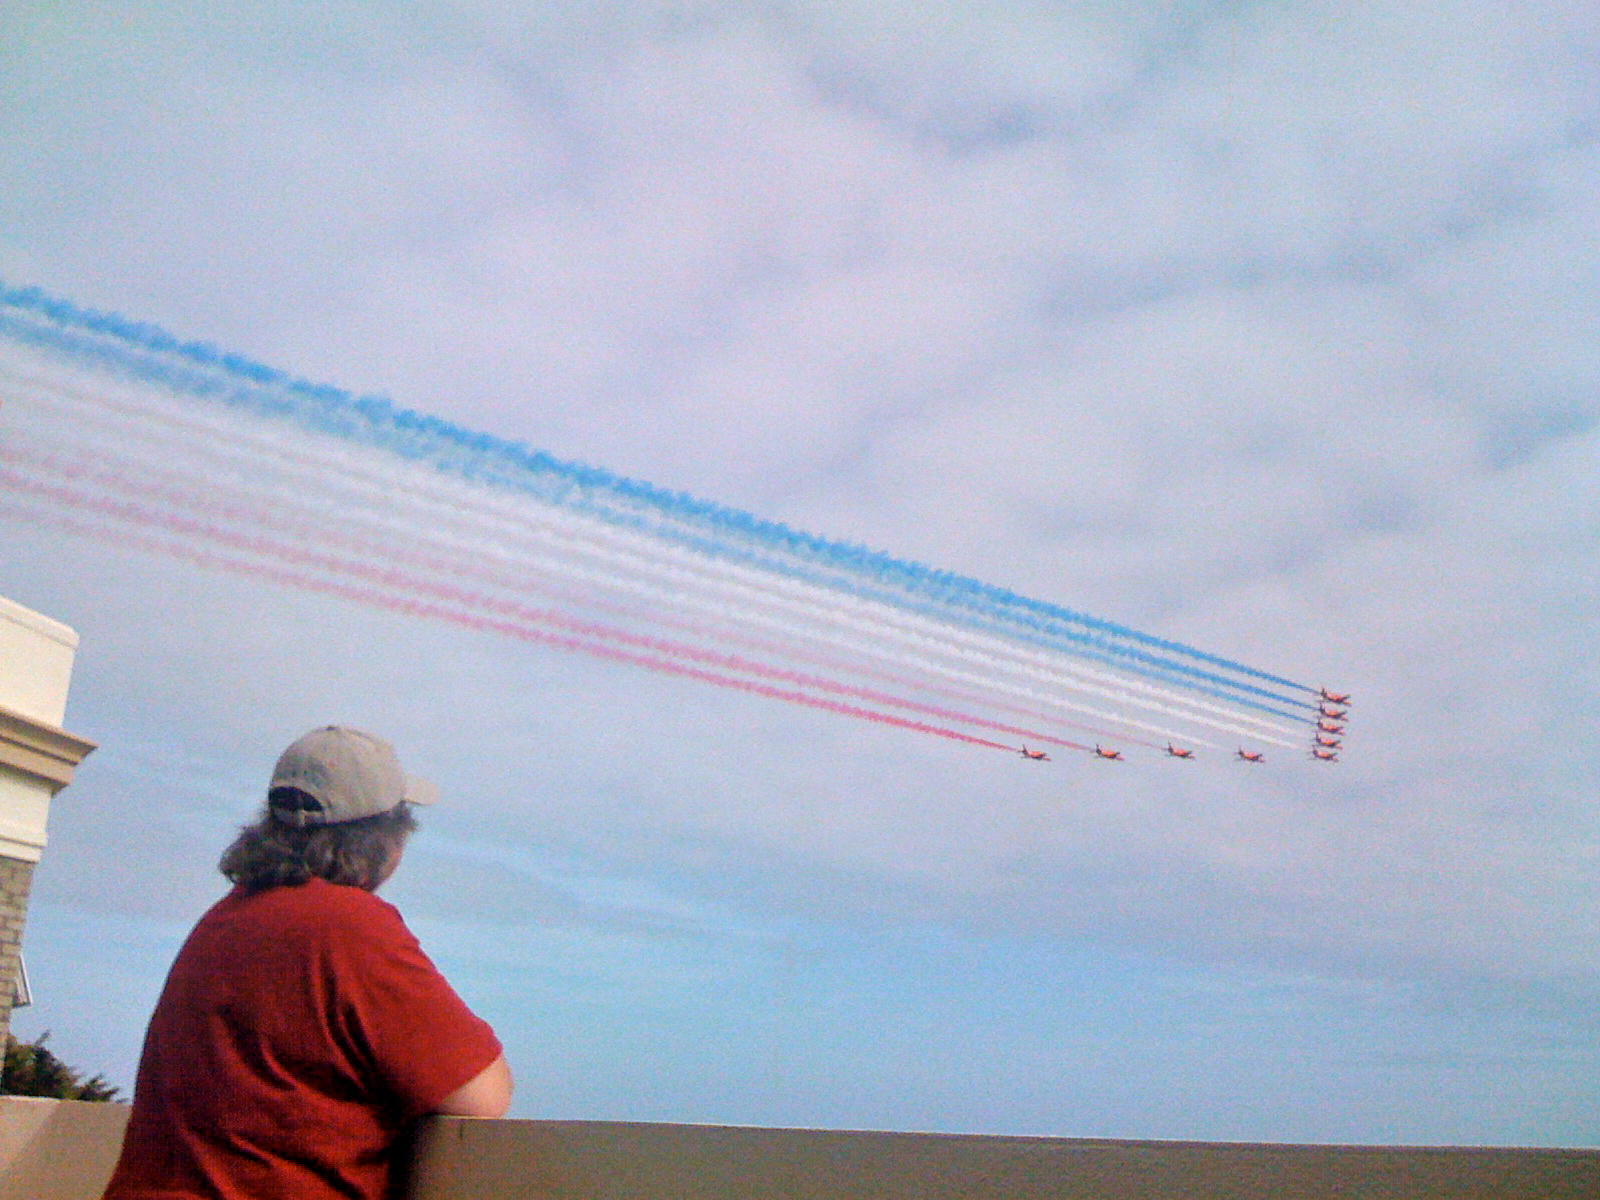 A photograph of the back of my wife in a red tee-shirt and beige cap stood on a balcony just as a nine plane Red Arrows jet formation flies past, trailing their blue, white and red smoke